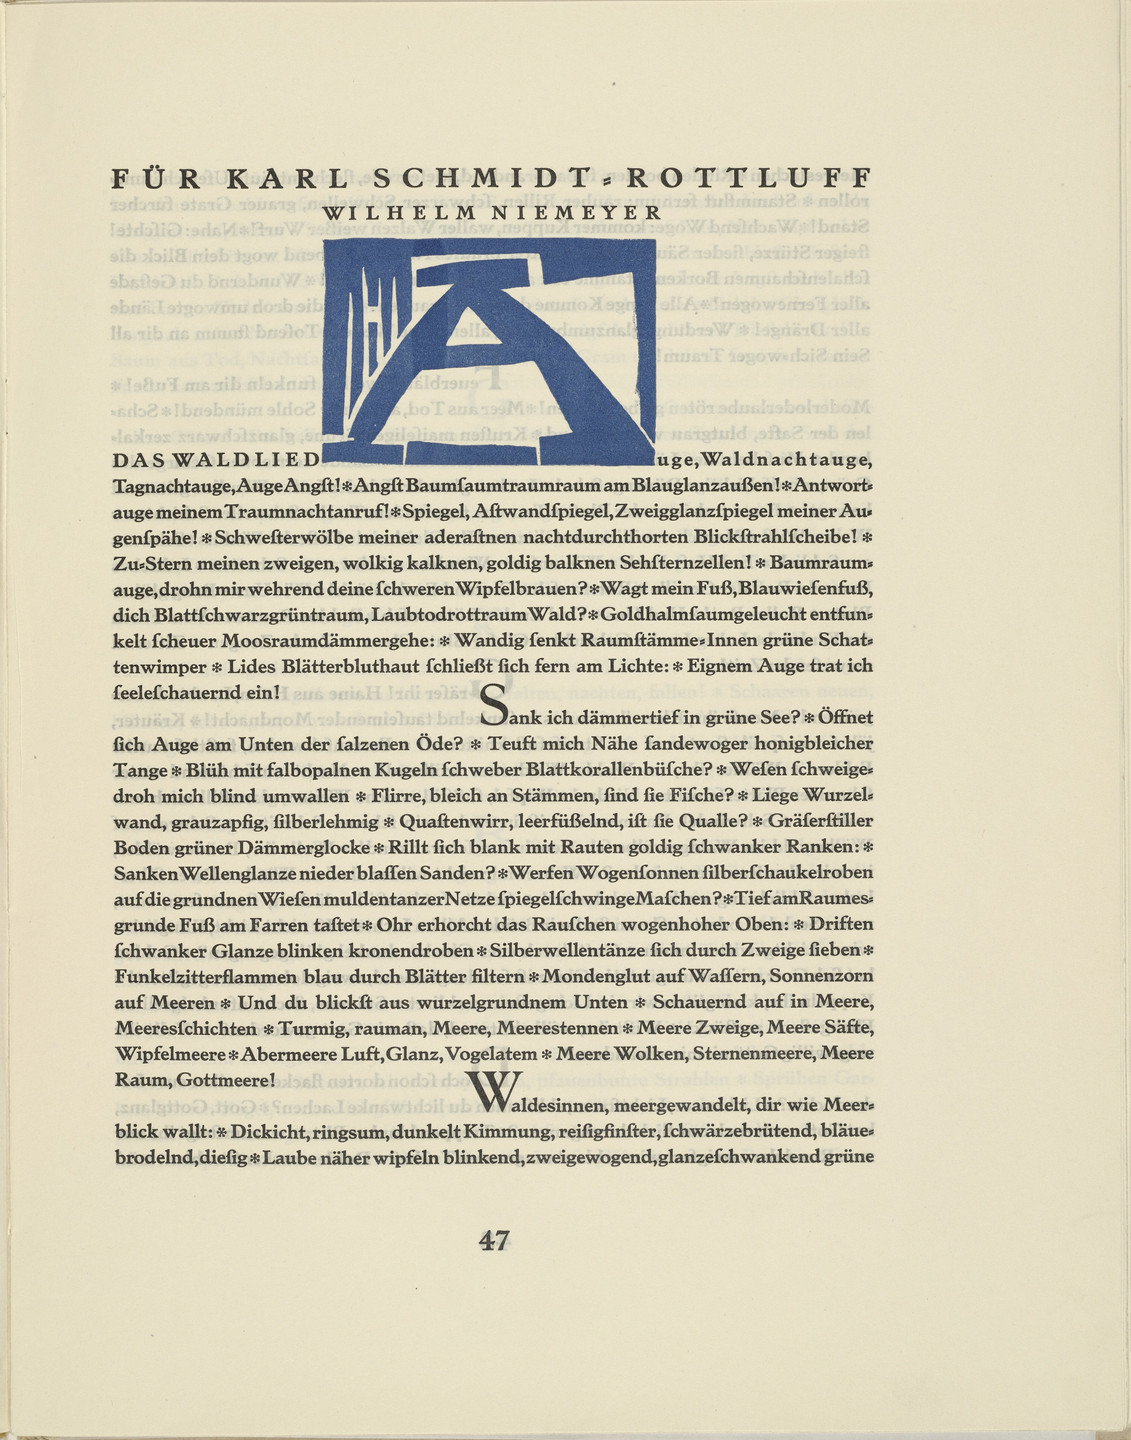 Karl Schmidt-Rottluff. Ornamental initial 'A' from the periodical Kündung, vol. 1, no. 4, 5, 6 (April, May, June 1921),. 1921 (executed 1920)